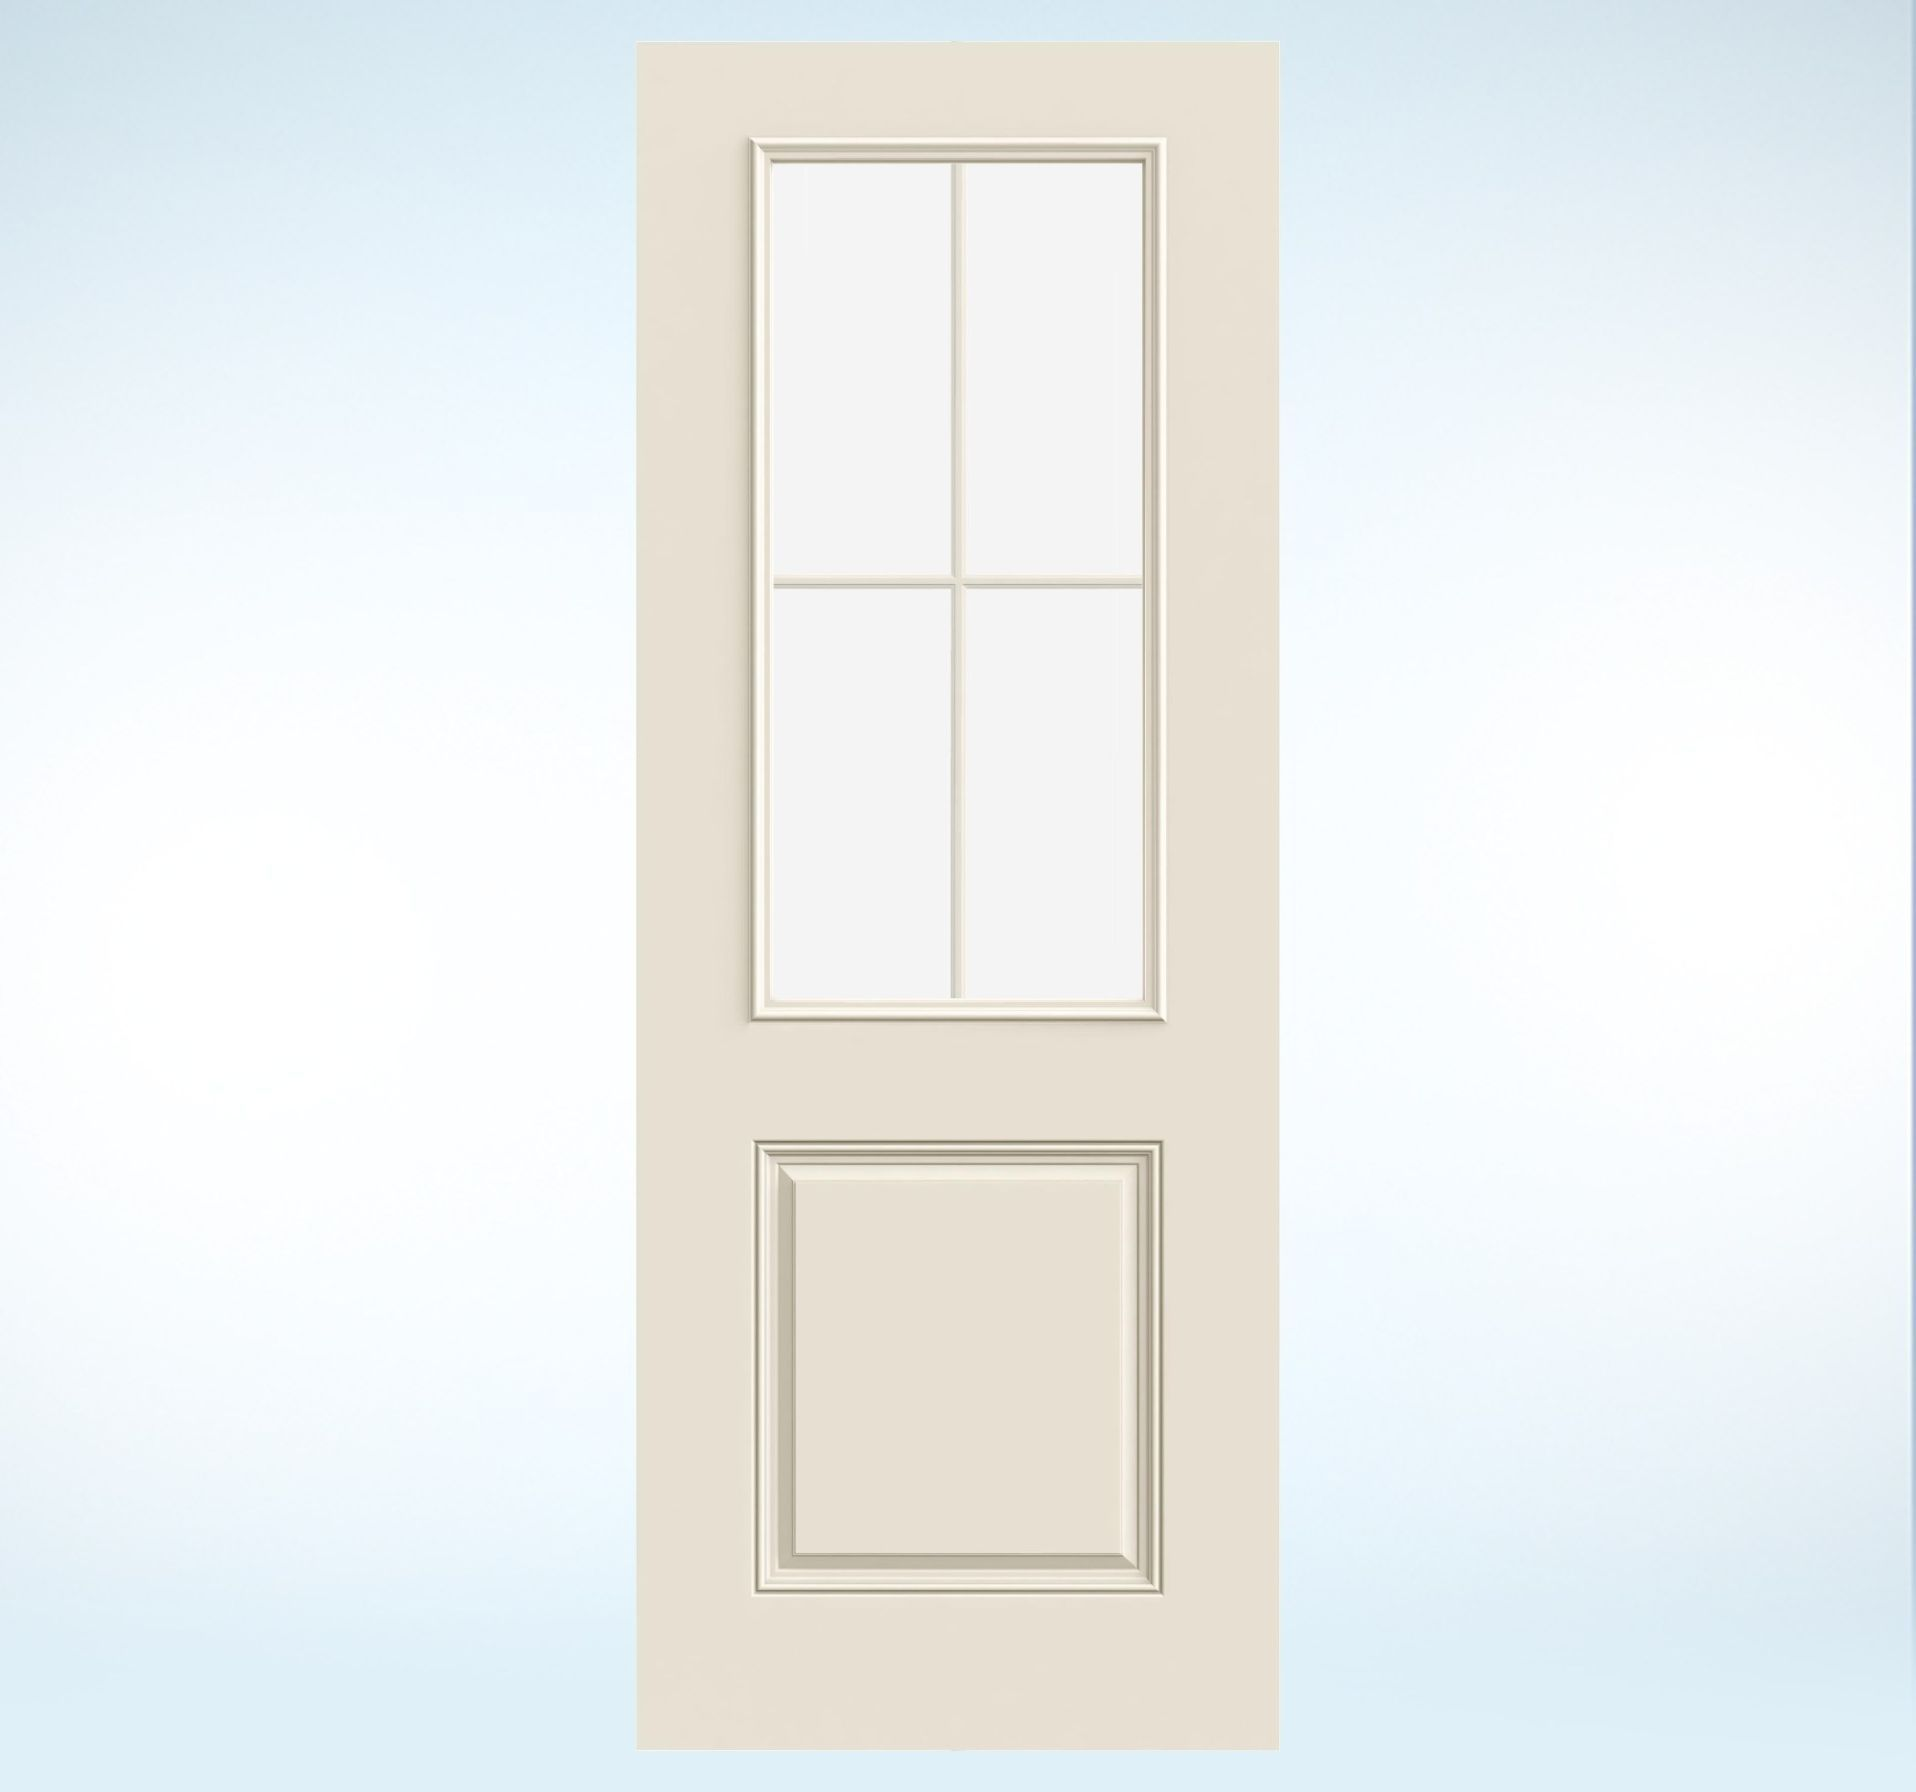 replacement alternatives double to doors a can parts size cost lowes window you just sliding one replace near side for pane large price front wen me jeld door estimator patio inserts of glass